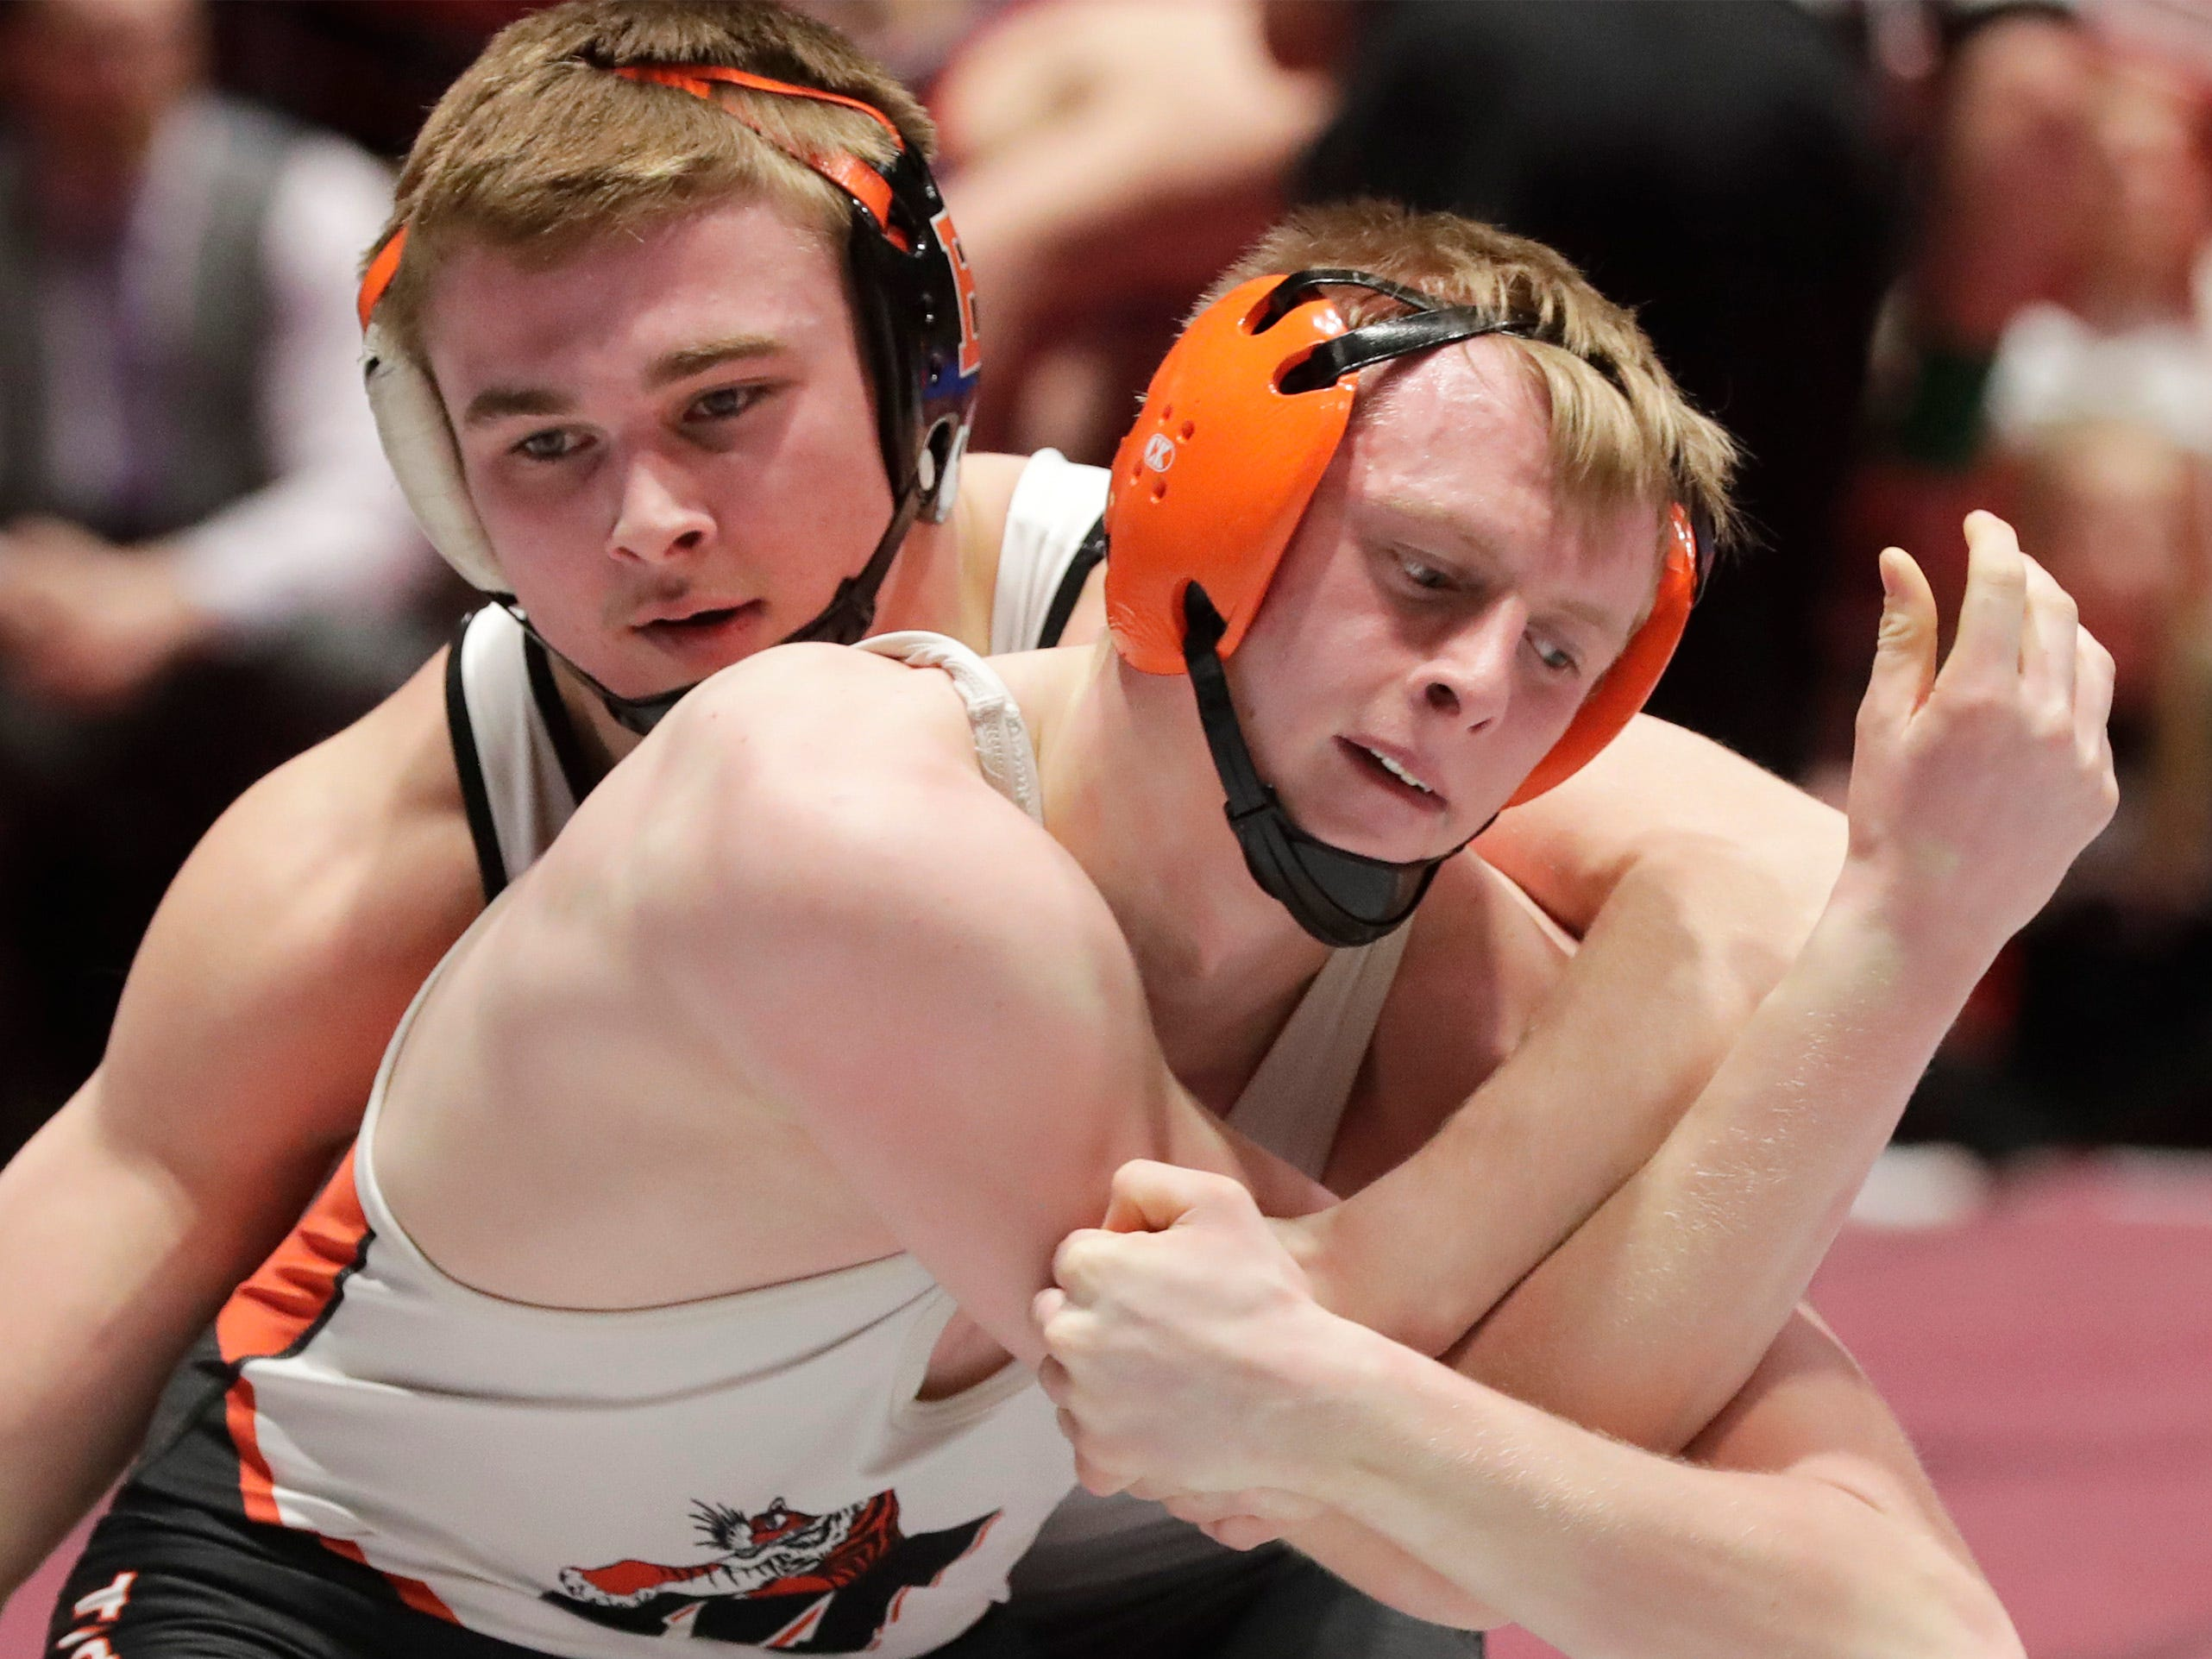 Burlington's Qwade Gehring, left, wrestles Marshfield's Bradley Hendrickson in a 170-pound match, Friday, March 1, 2019, in Madison, Wis.